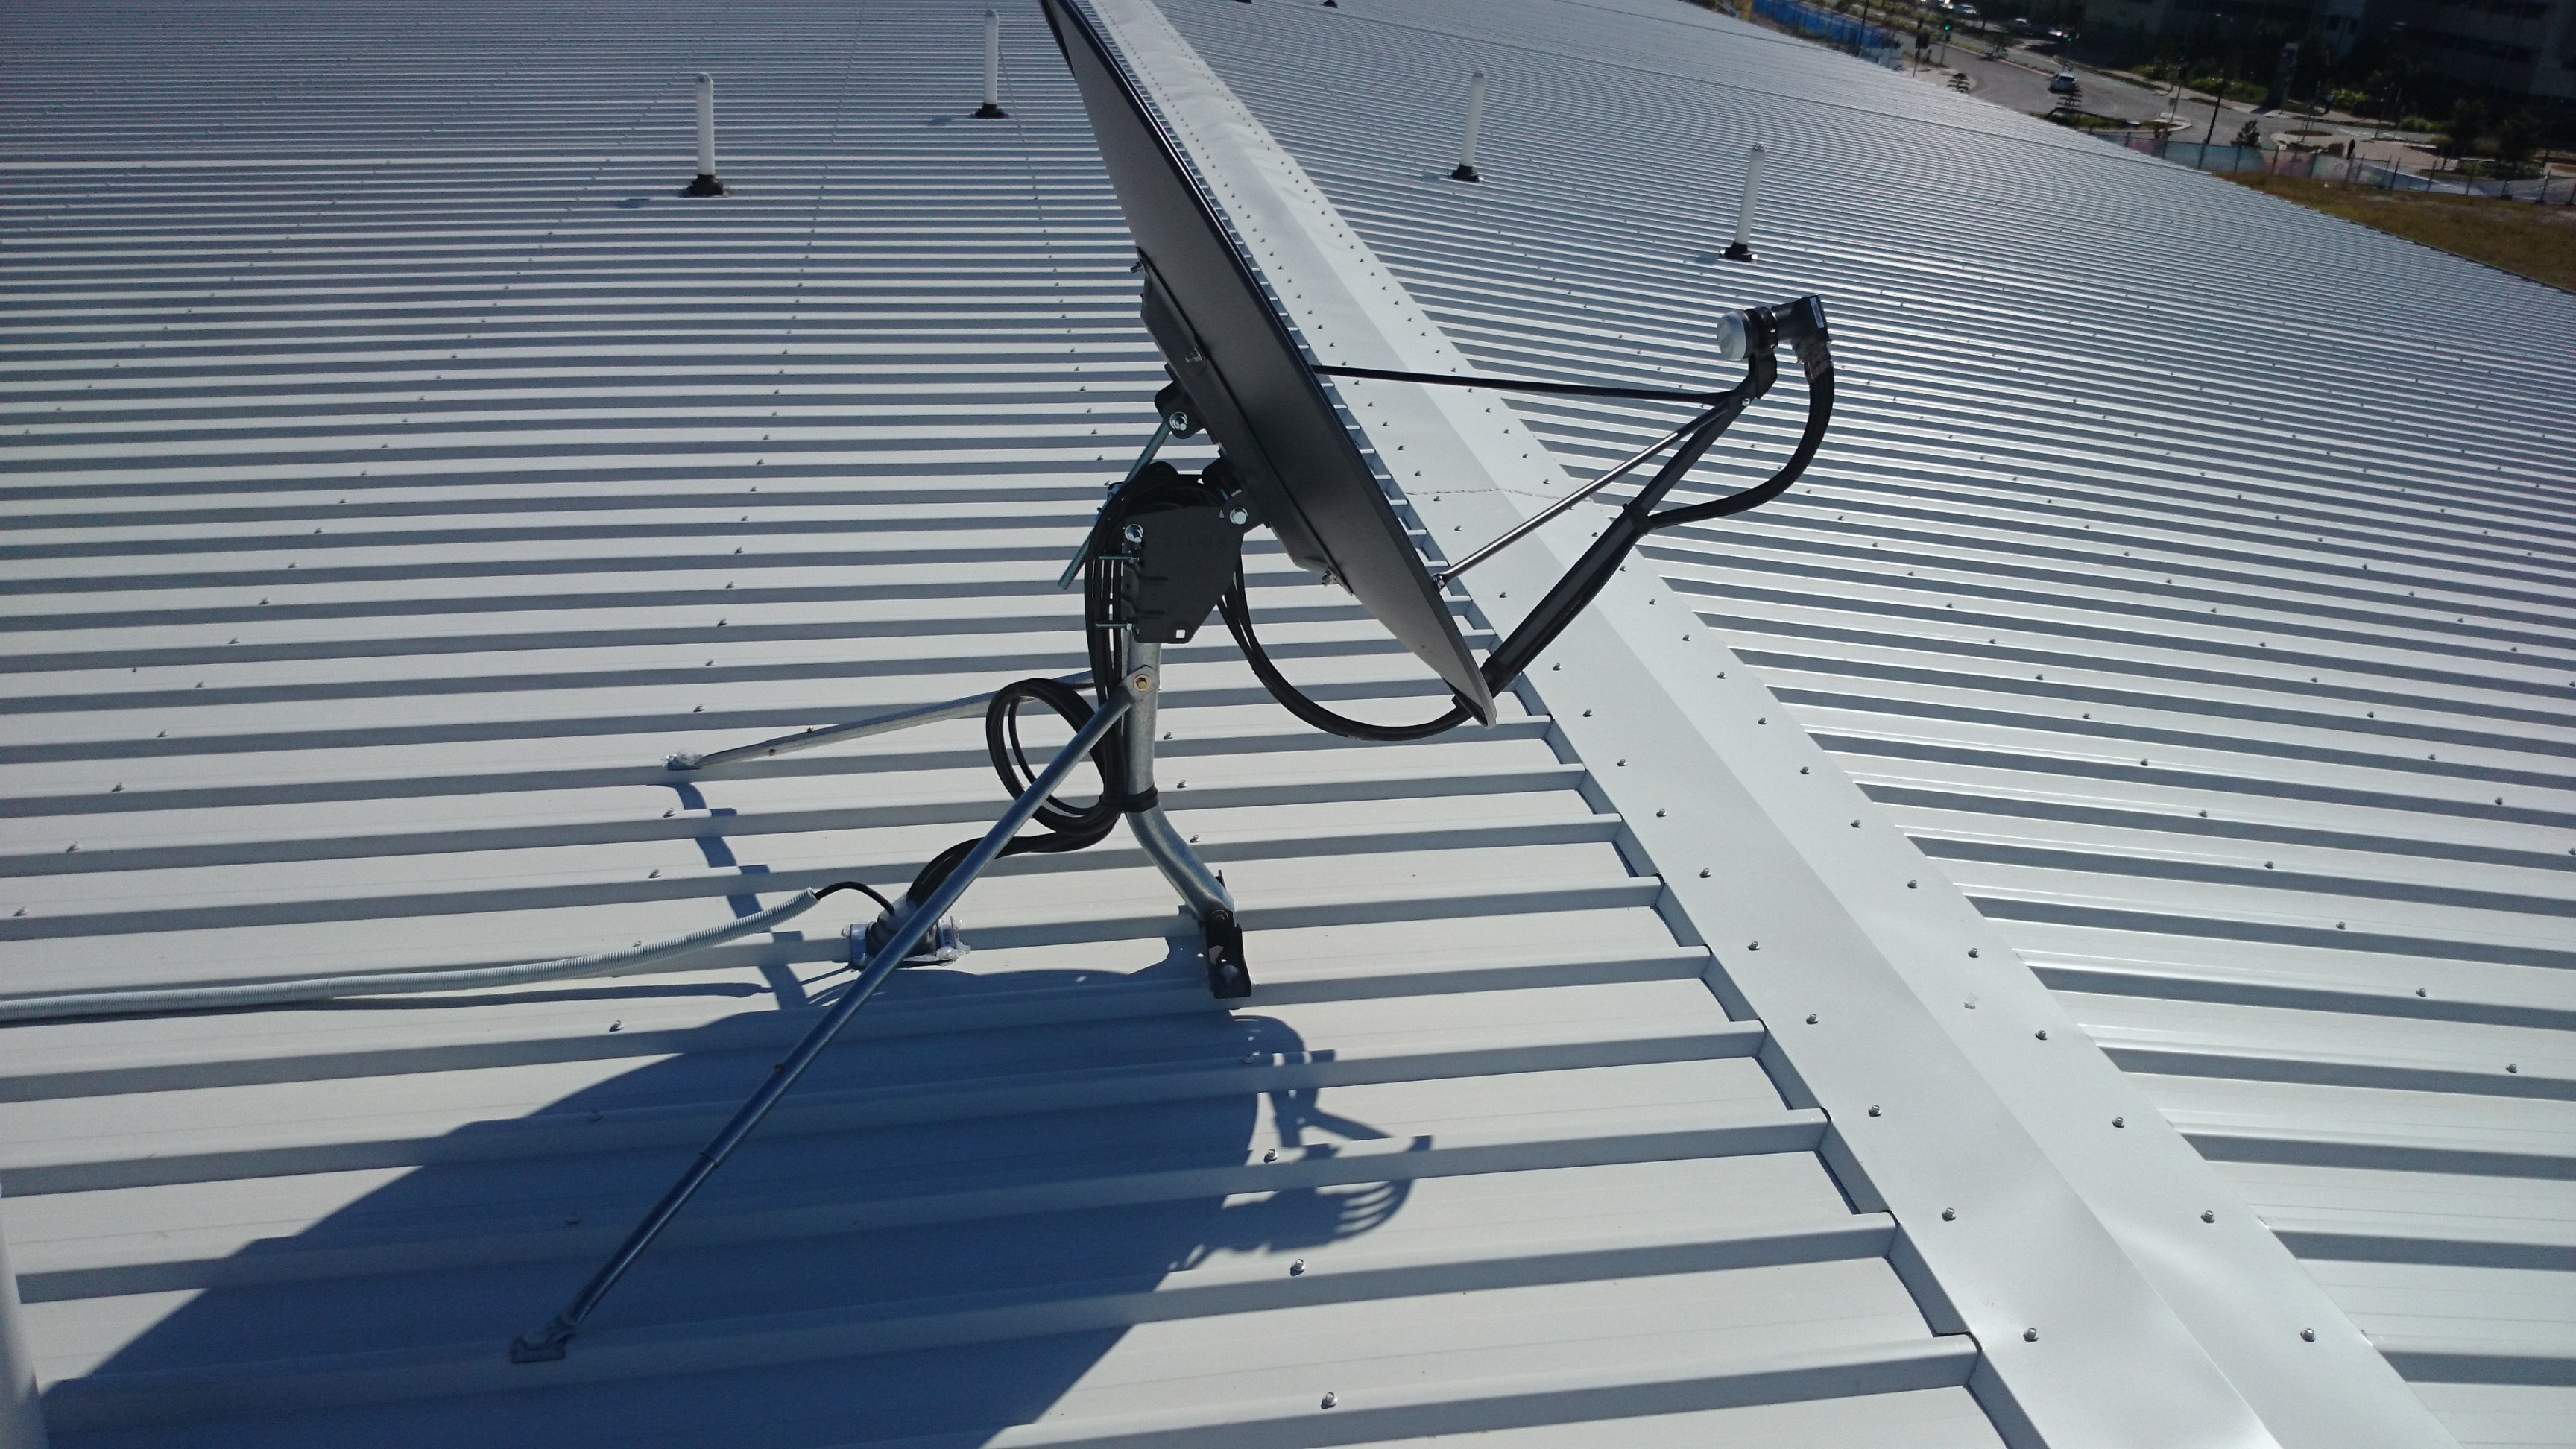 foxtel satellite dish wiring diagram 5 wire motorcycle trailer install a and national weather temperature map tv technical whizz internet via the shop broadband installation